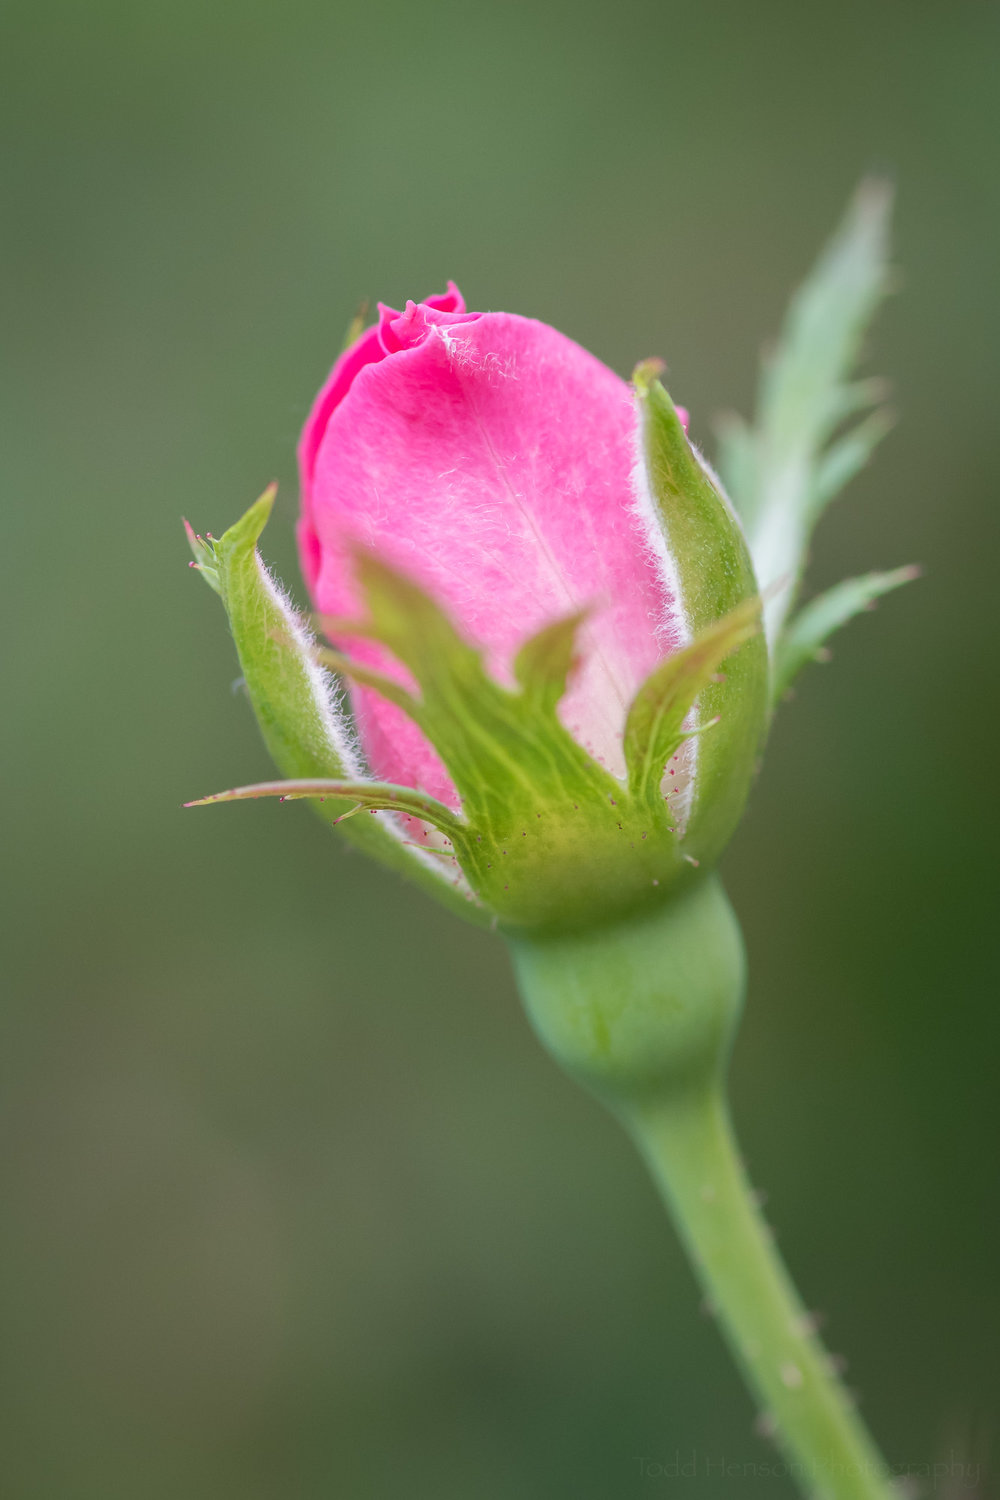 A young rose bud